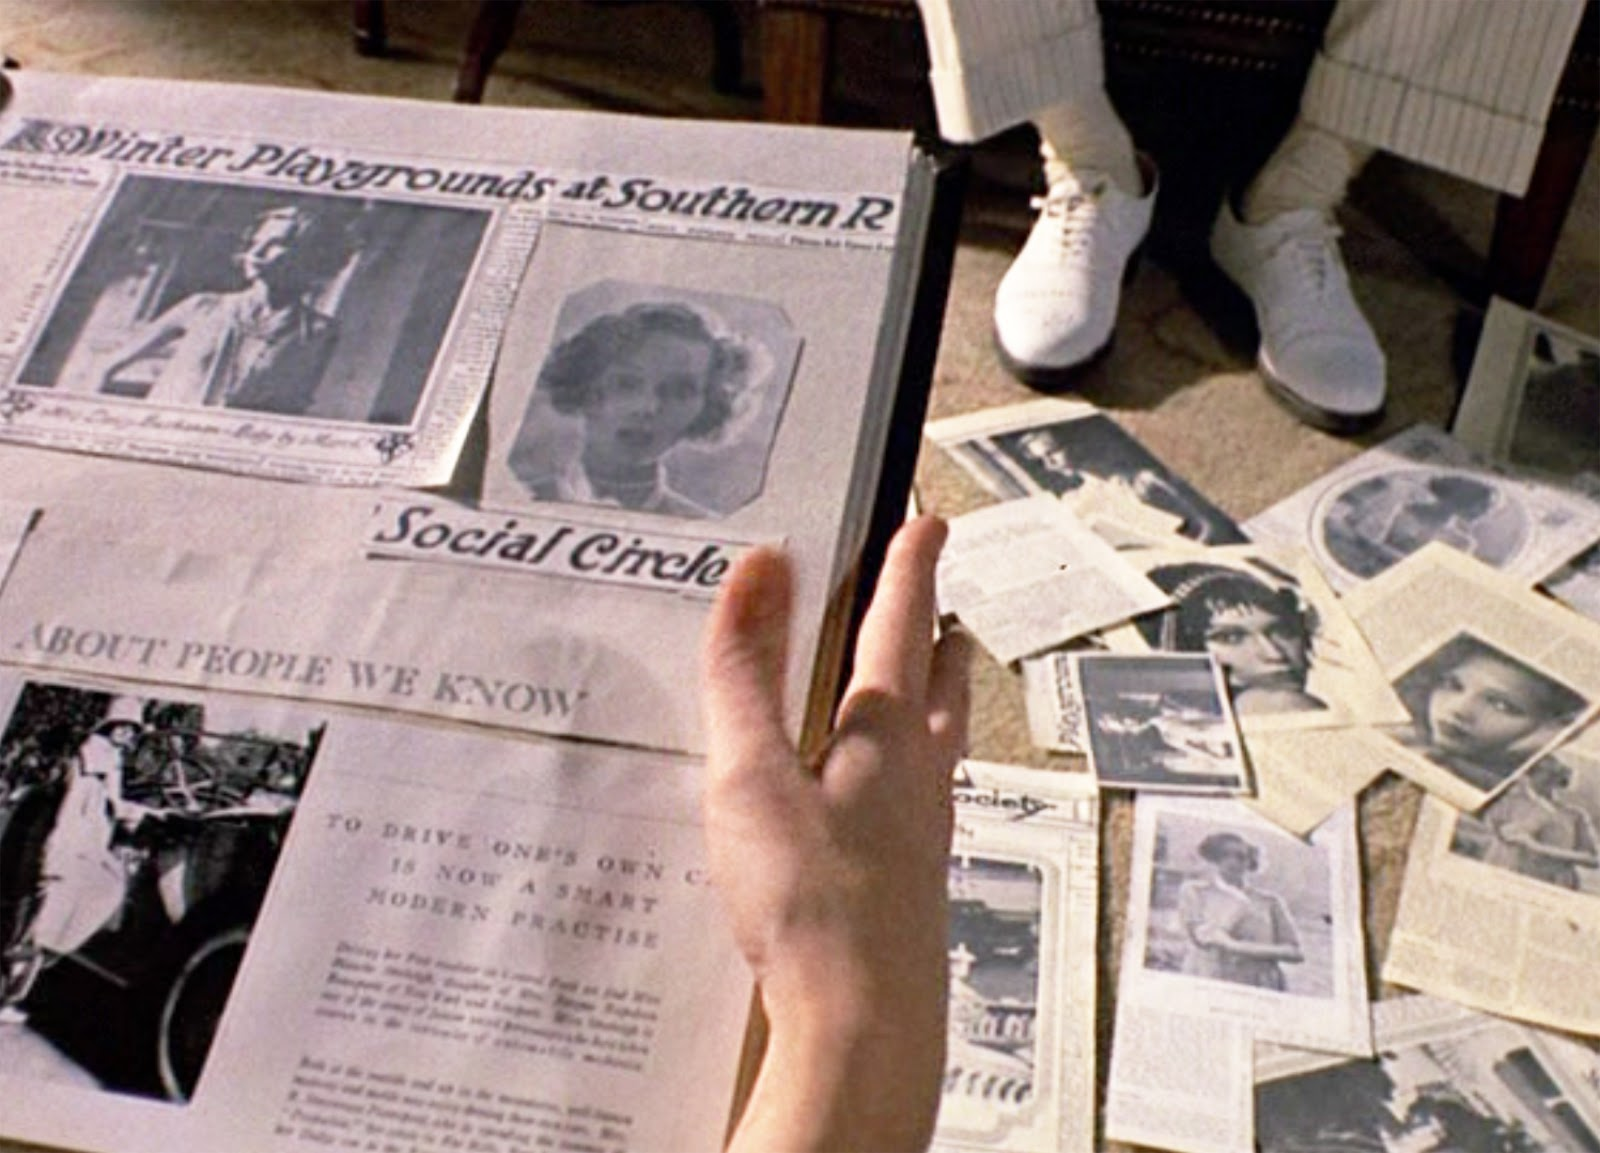 How to scrapbook newspaper clippings - Seen Here Daisy Buchanan Looking At A Scrapbook Of Newspaper Clippings Featuring Social Events